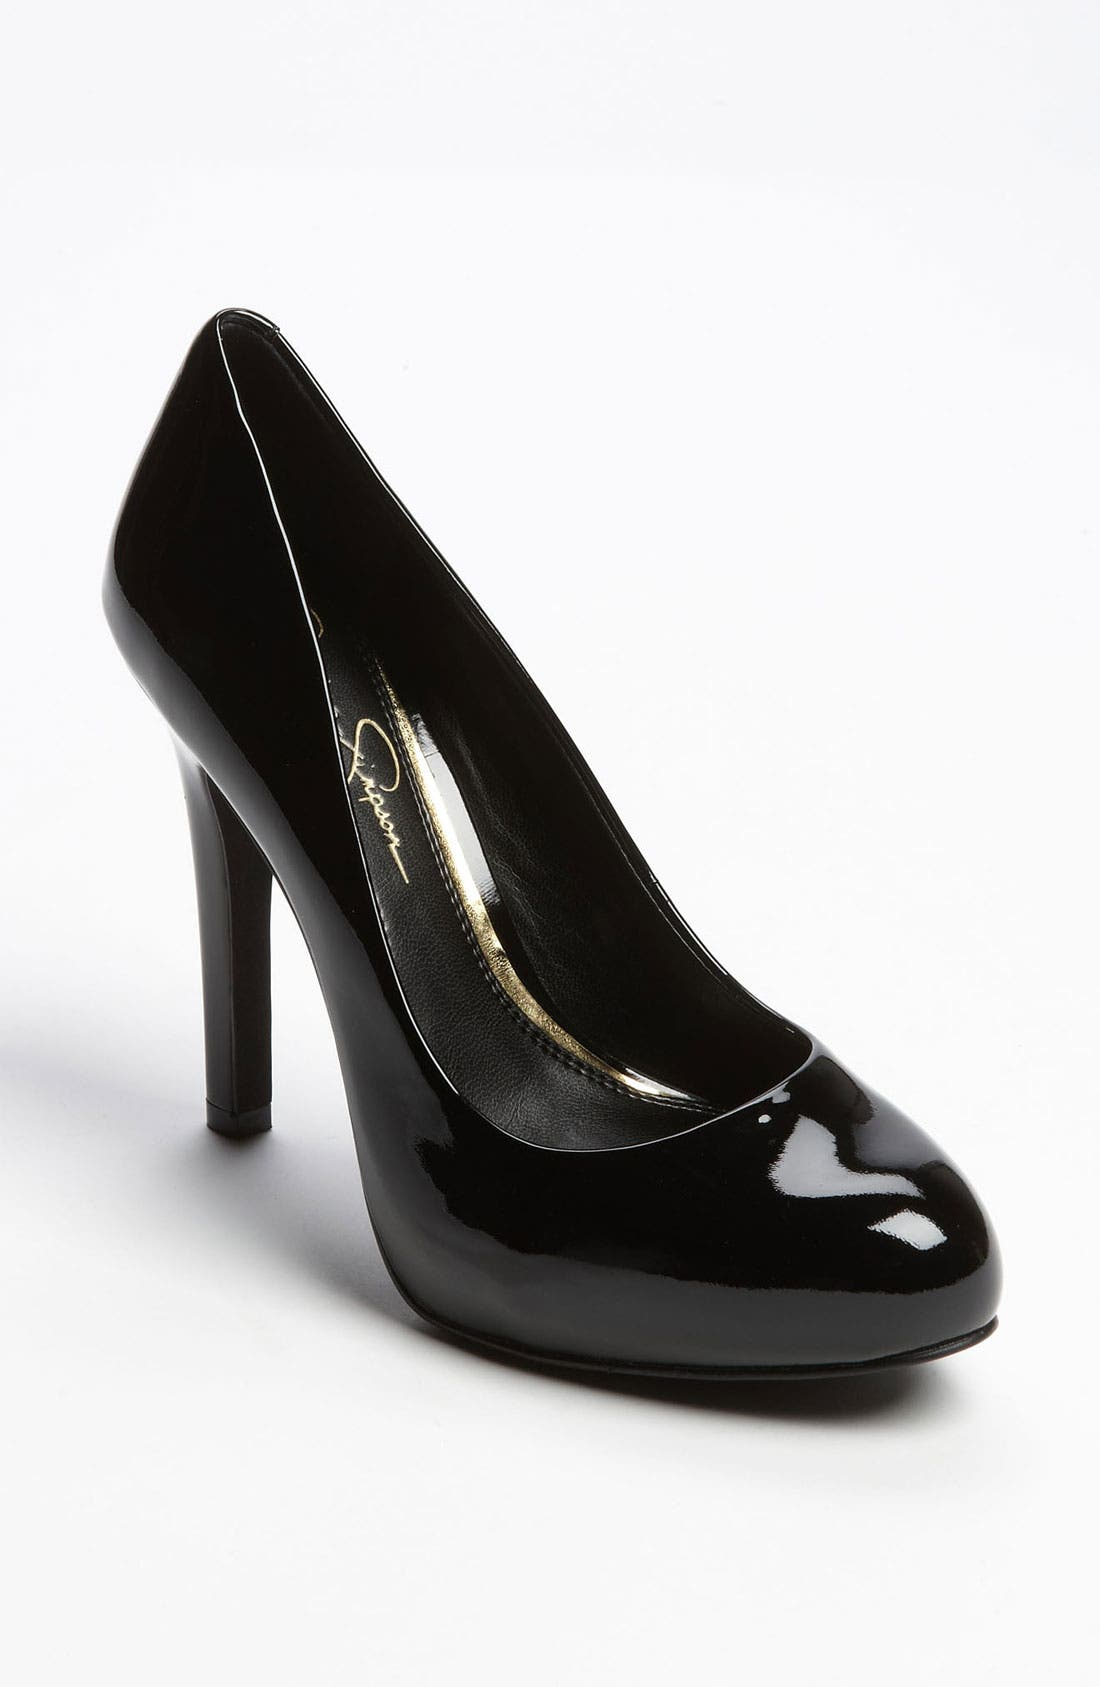 JESSICA SIMPSON 'Abriana' Pump, Main, color, 001